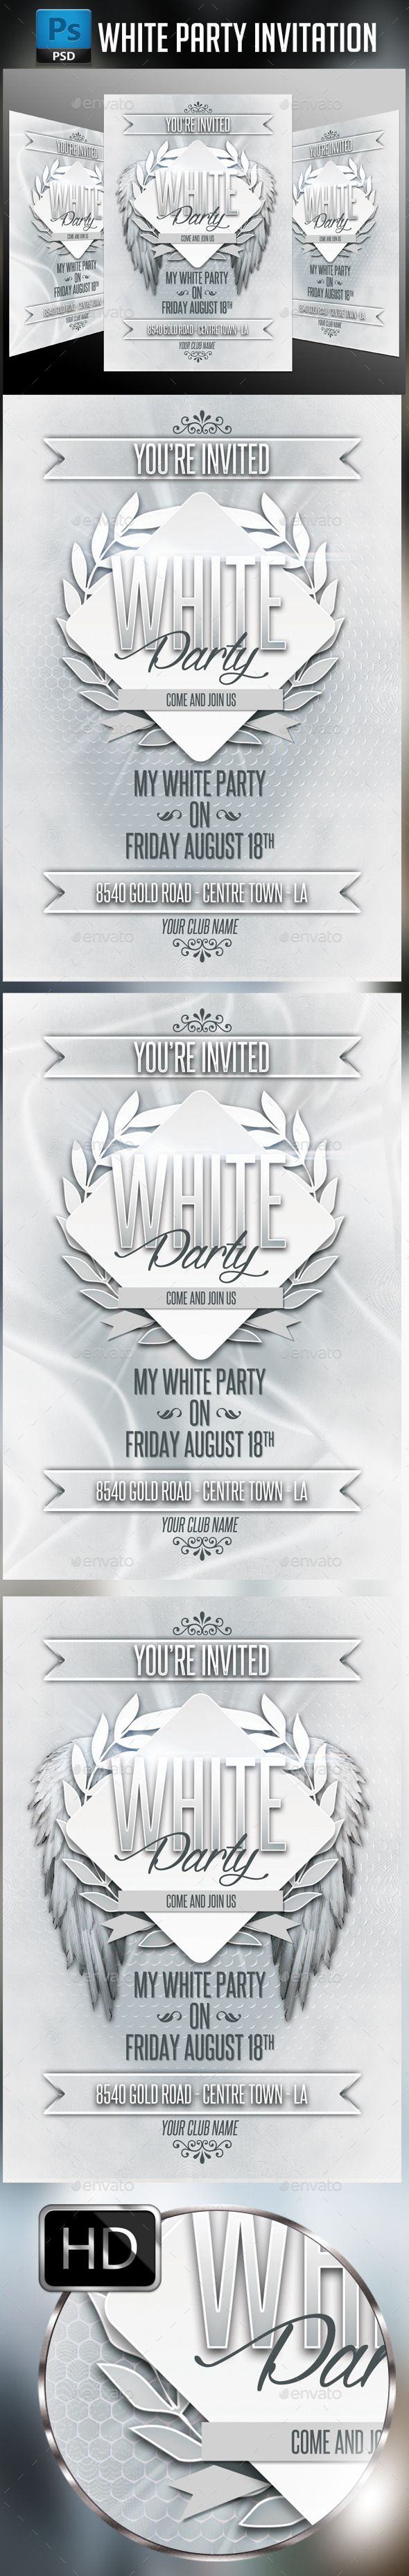 White Party Invitation  (CS, 4x6, classic, elegant, event, flyer, greeting, invitation, love, luxury, metal, modern, party, postcard, press, release, special, template, ticket, together, white)